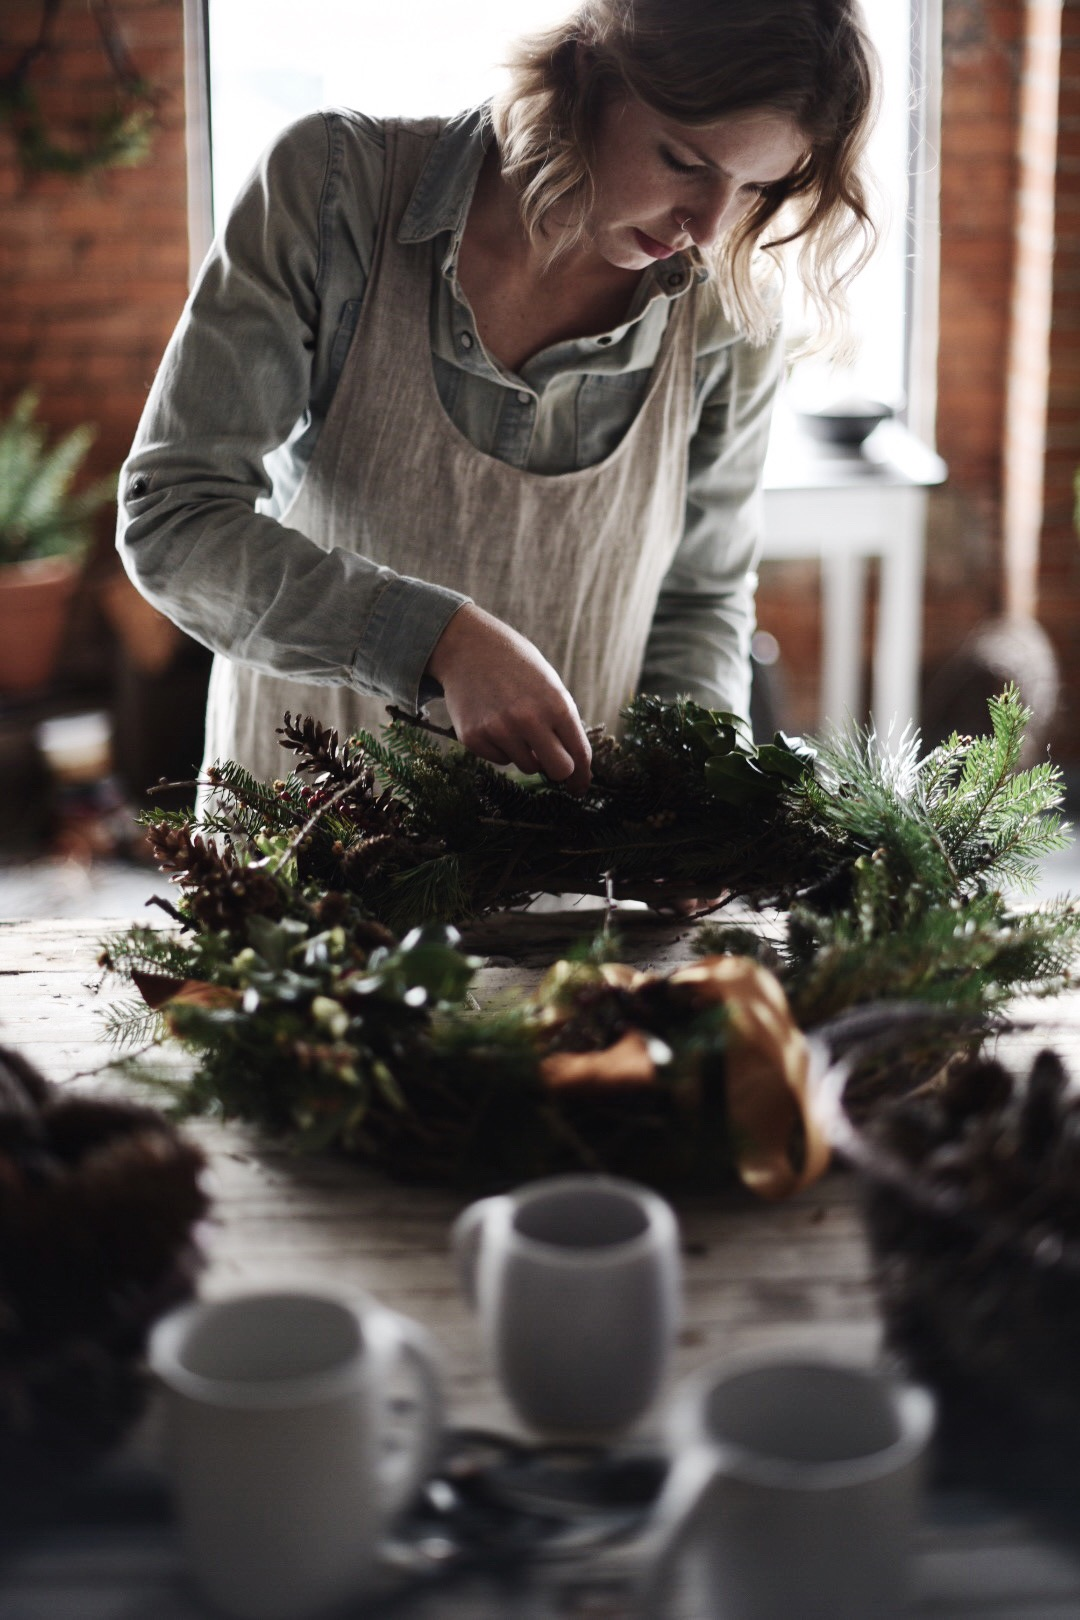 Wreath making with Jessica Hunter, the floral designer behind A Fine Medley